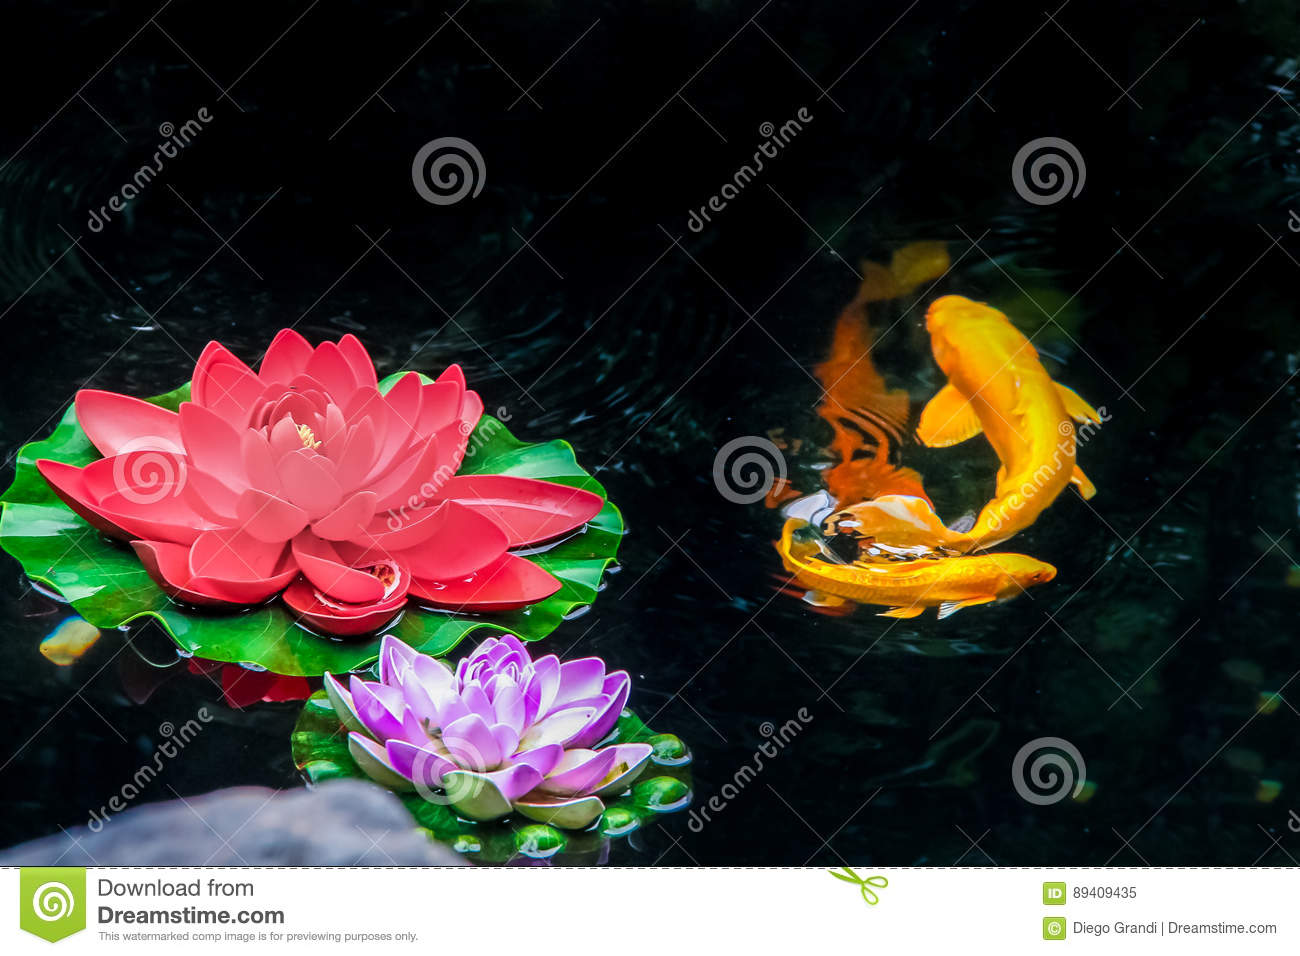 Koi fish and flowers on a pond - Shanghai, China